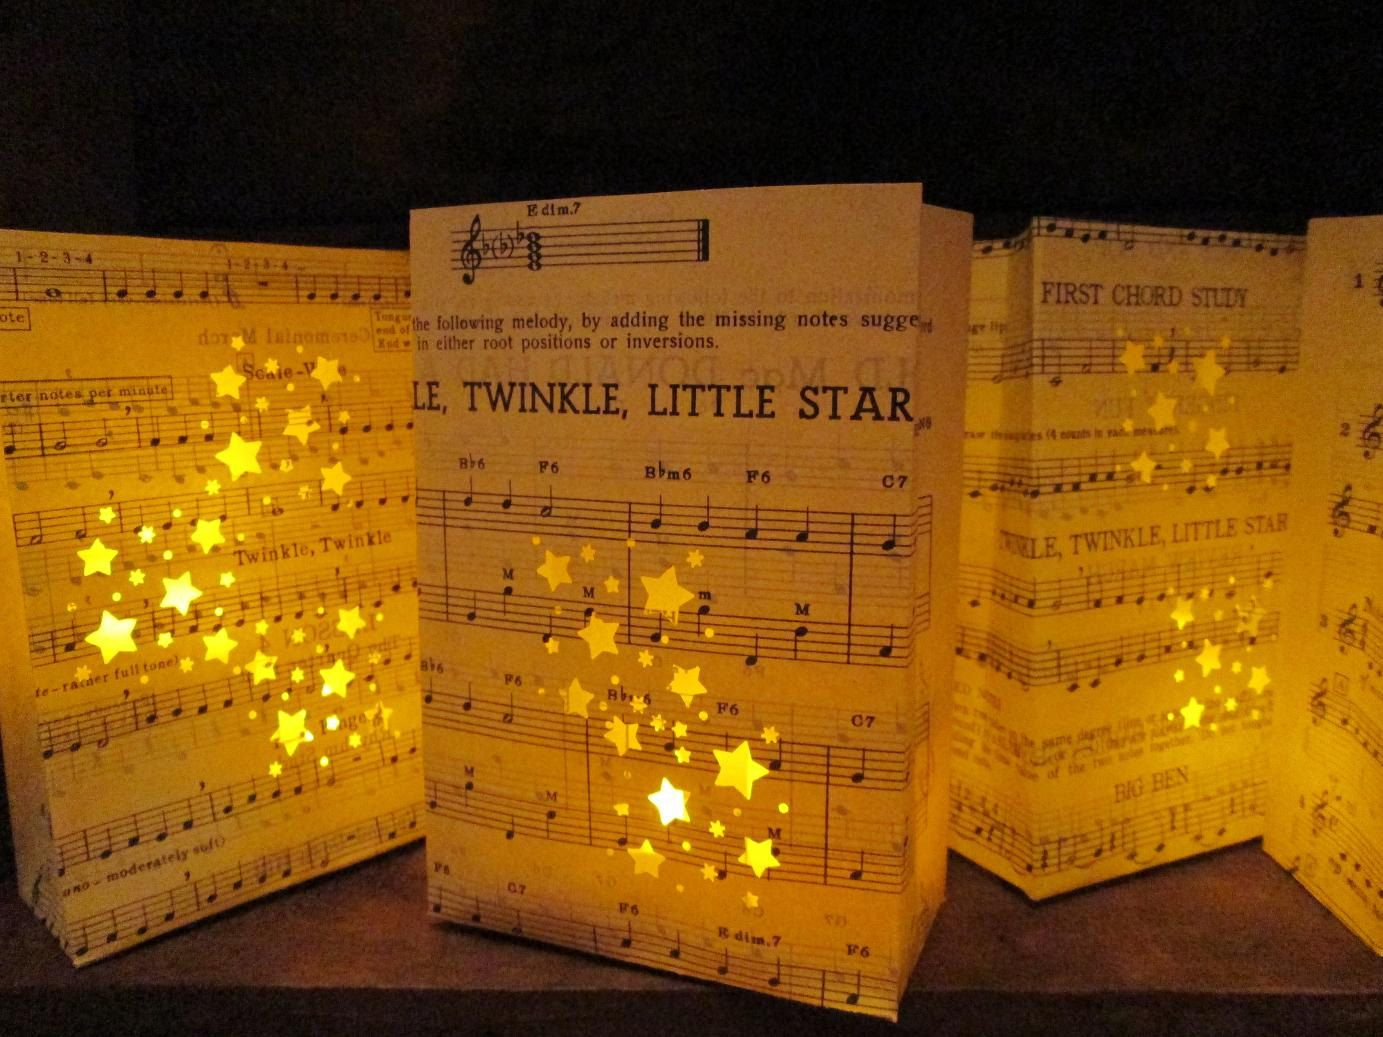 Twinkle little star - Royalty Free Music